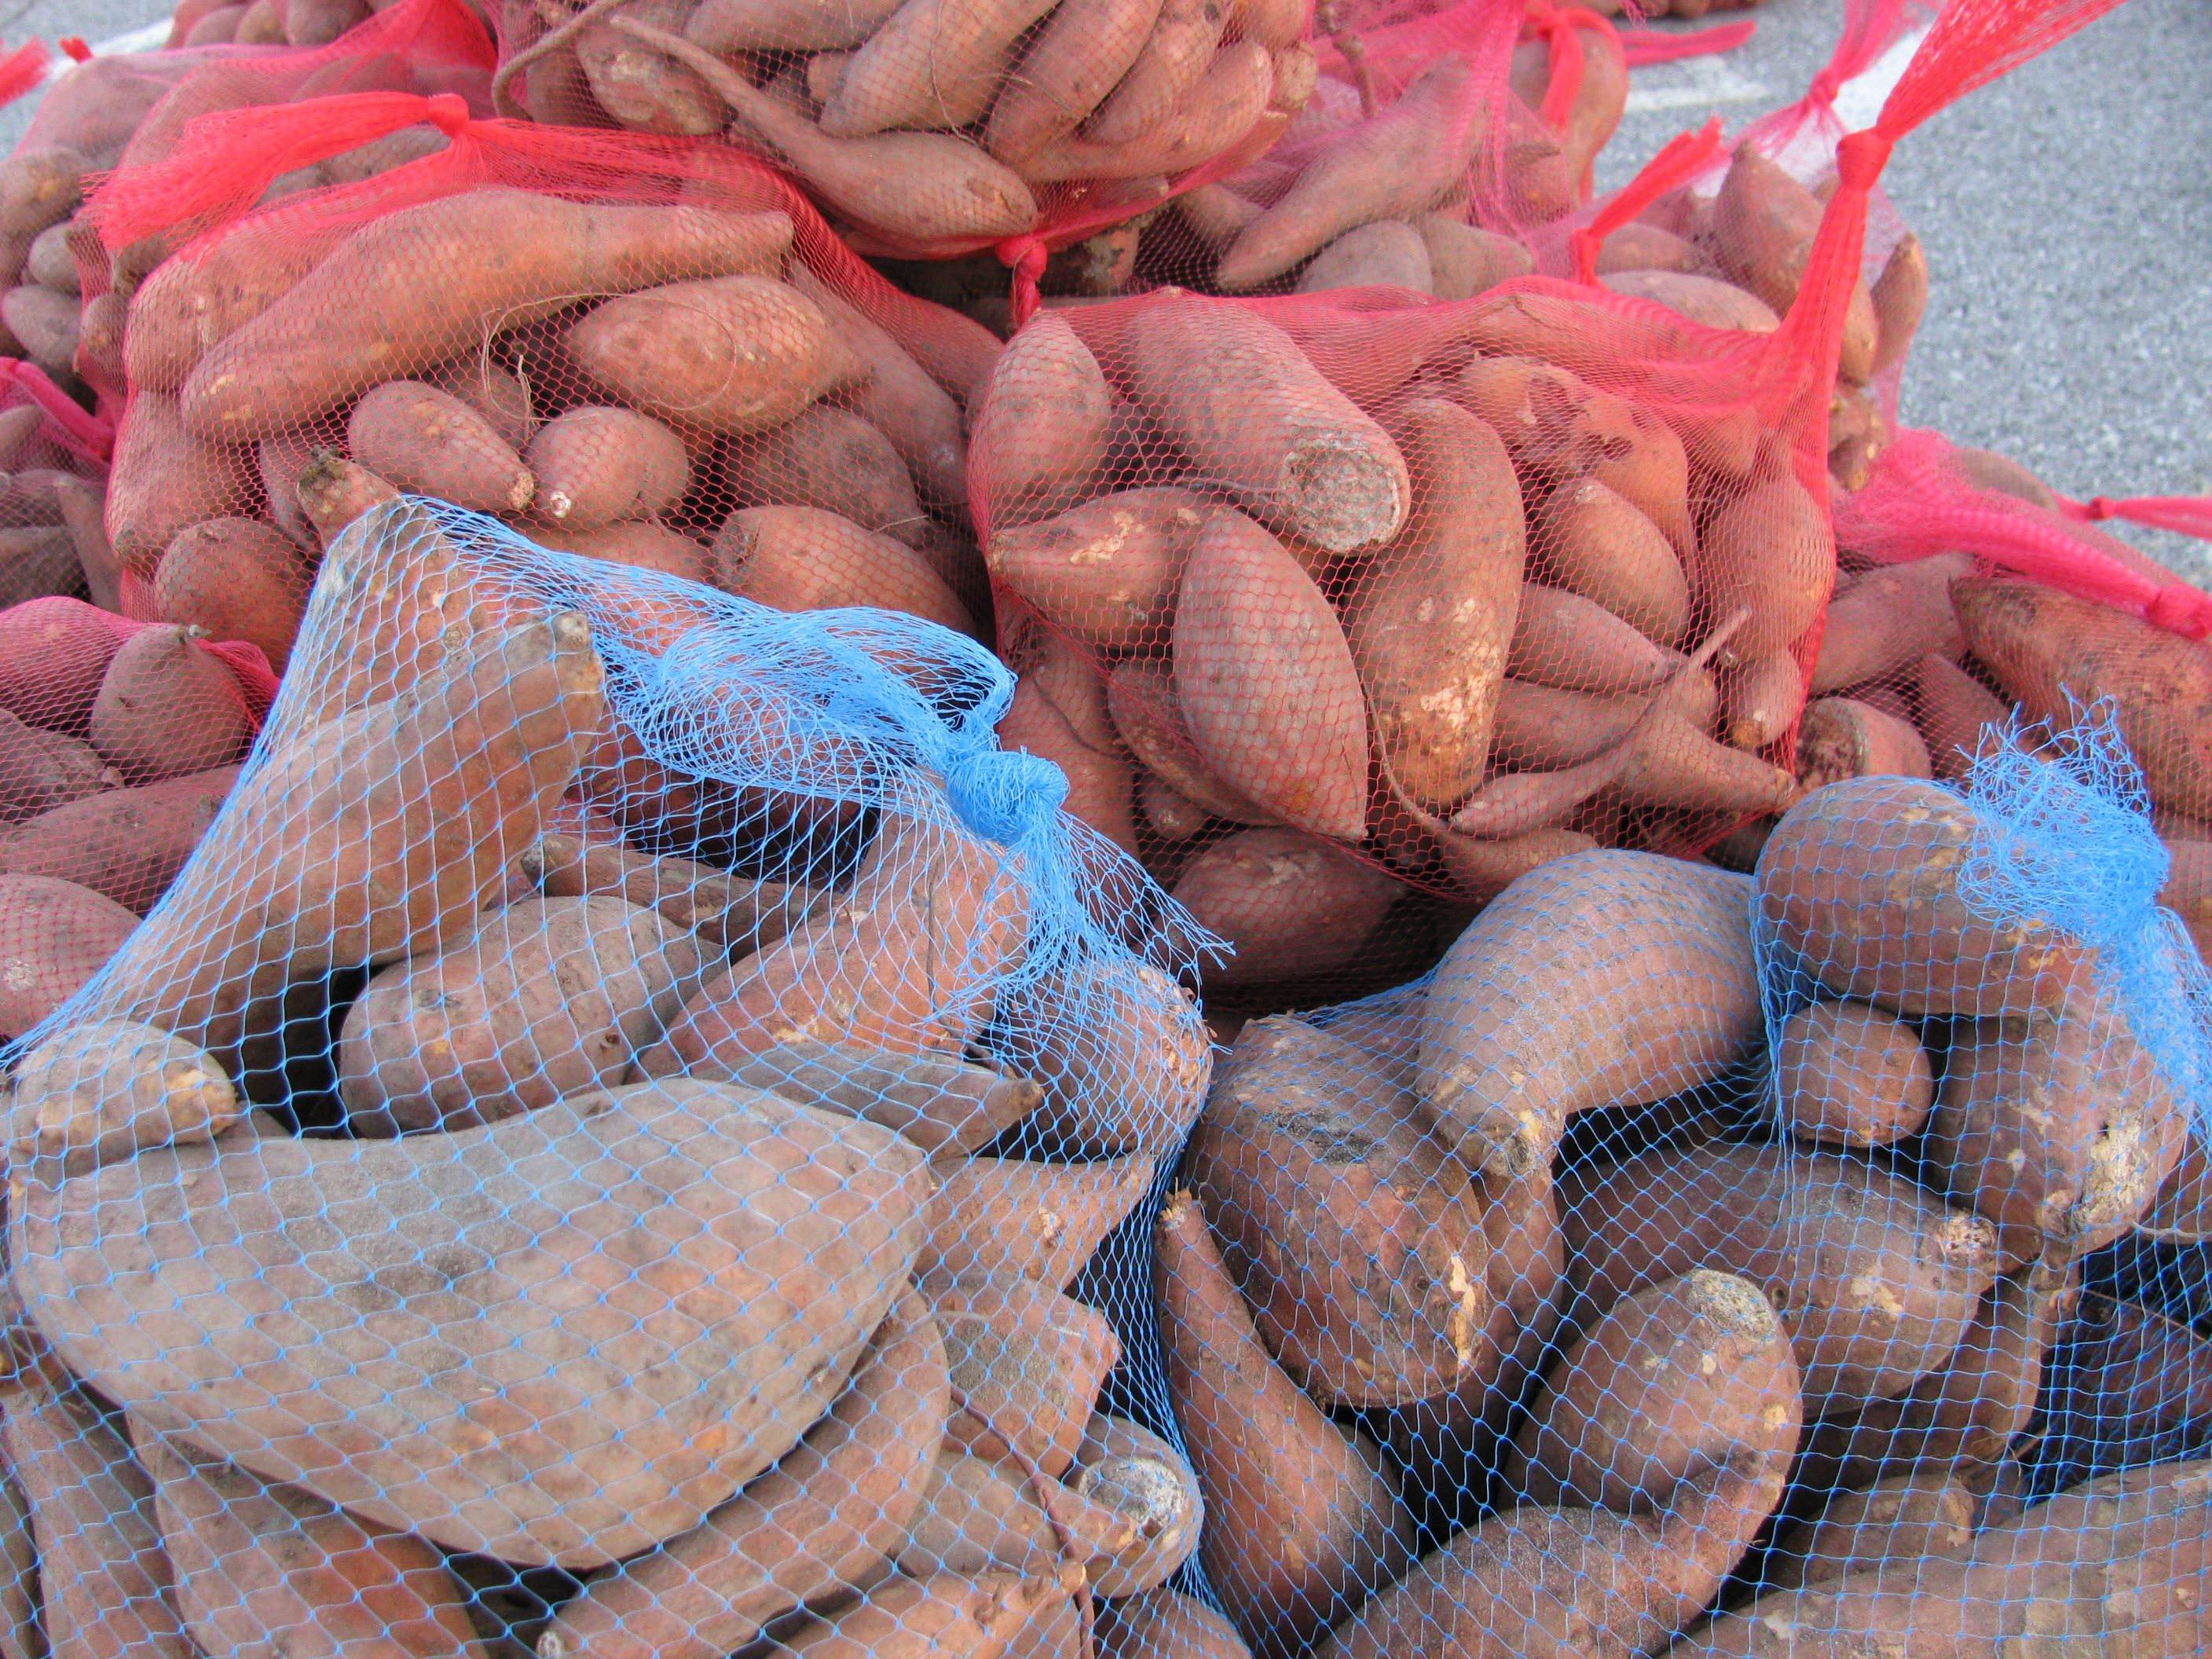 More than 20 tons of potatoes will be dropped at Southview